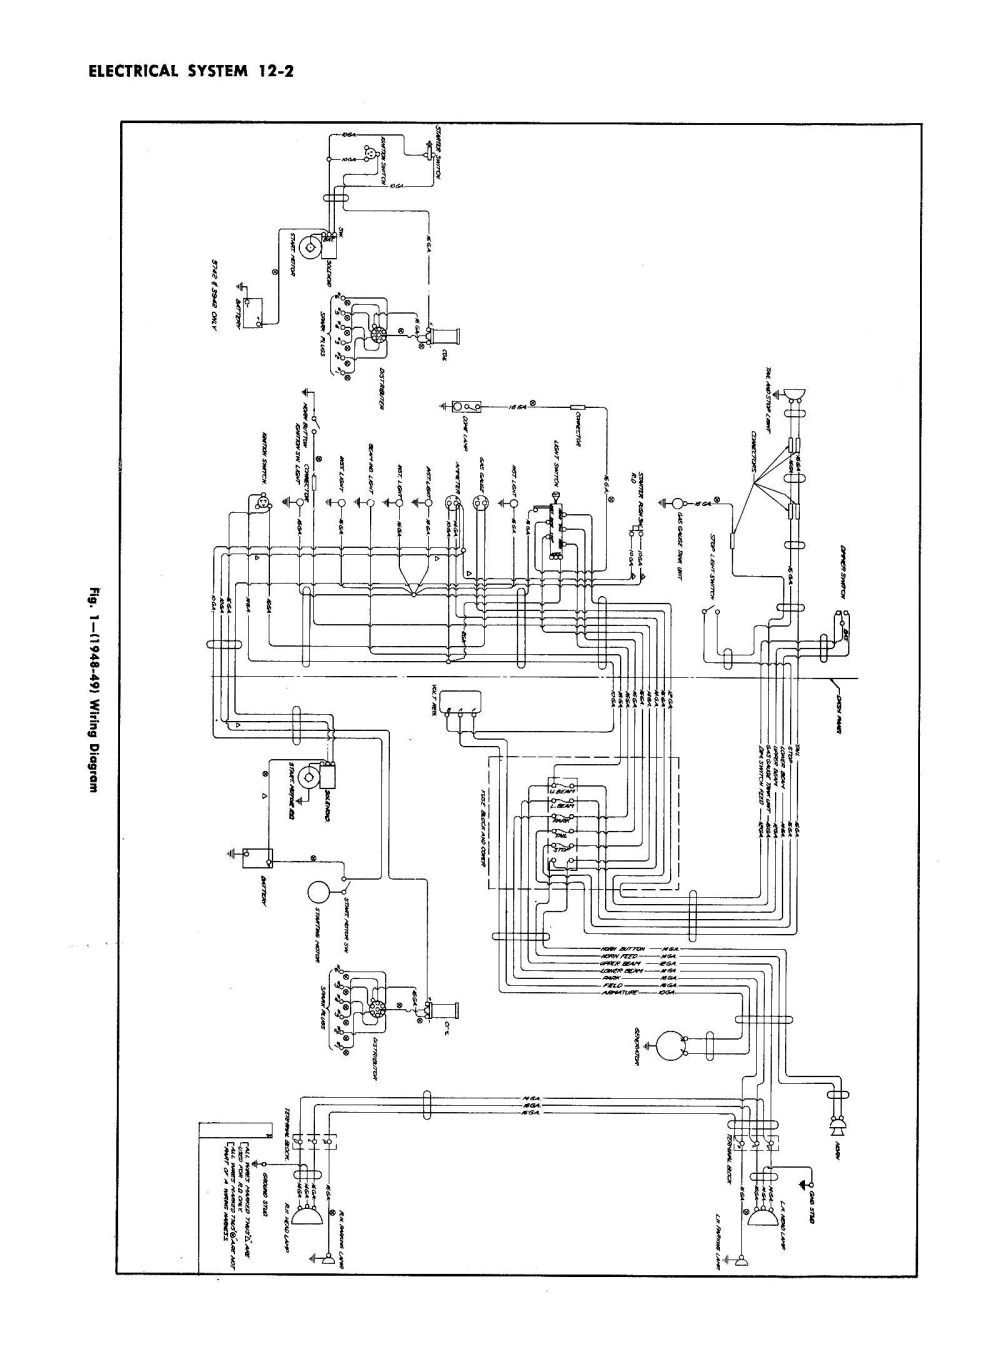 medium resolution of 1954 chevy wiring diagram simple wiring schema 1935 ford wiring diagram 1952 chevy wiring diagram